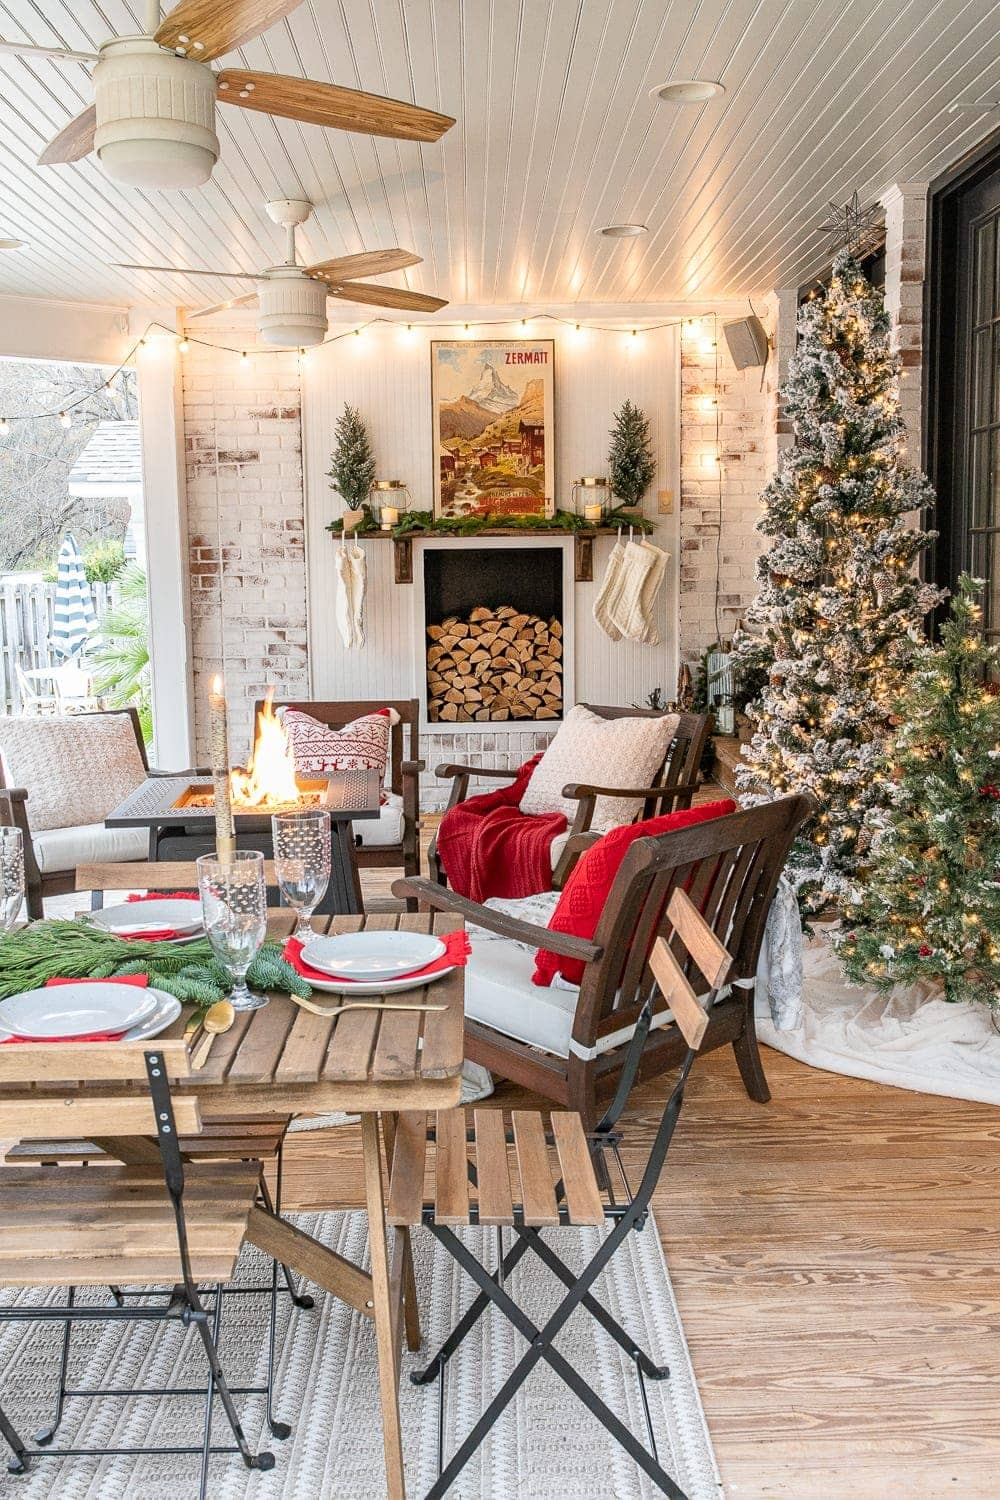 Cozy Christmas back porch with faux fireplace and fire pit